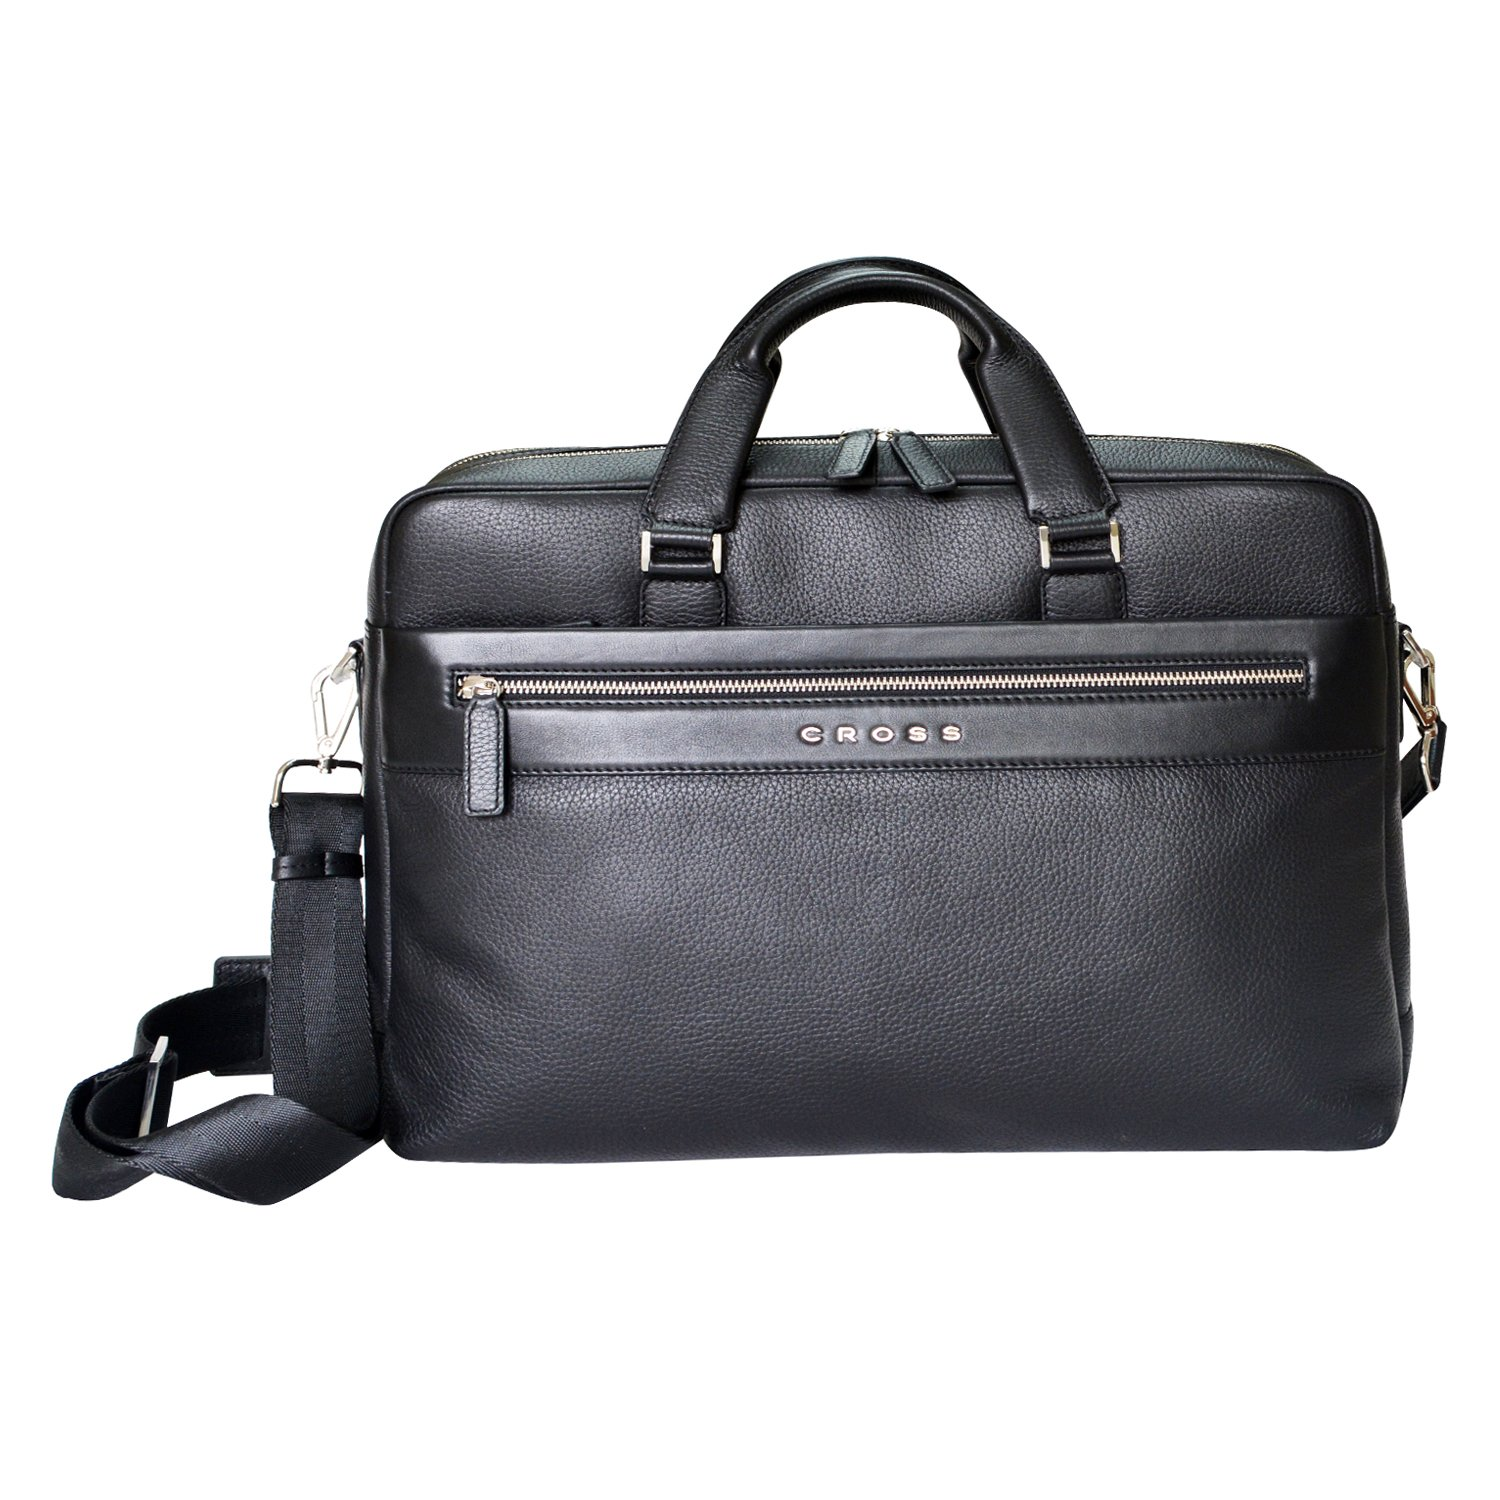 Cross 20 Ltrs Black Softsided Briefcase (AC021115B-1)